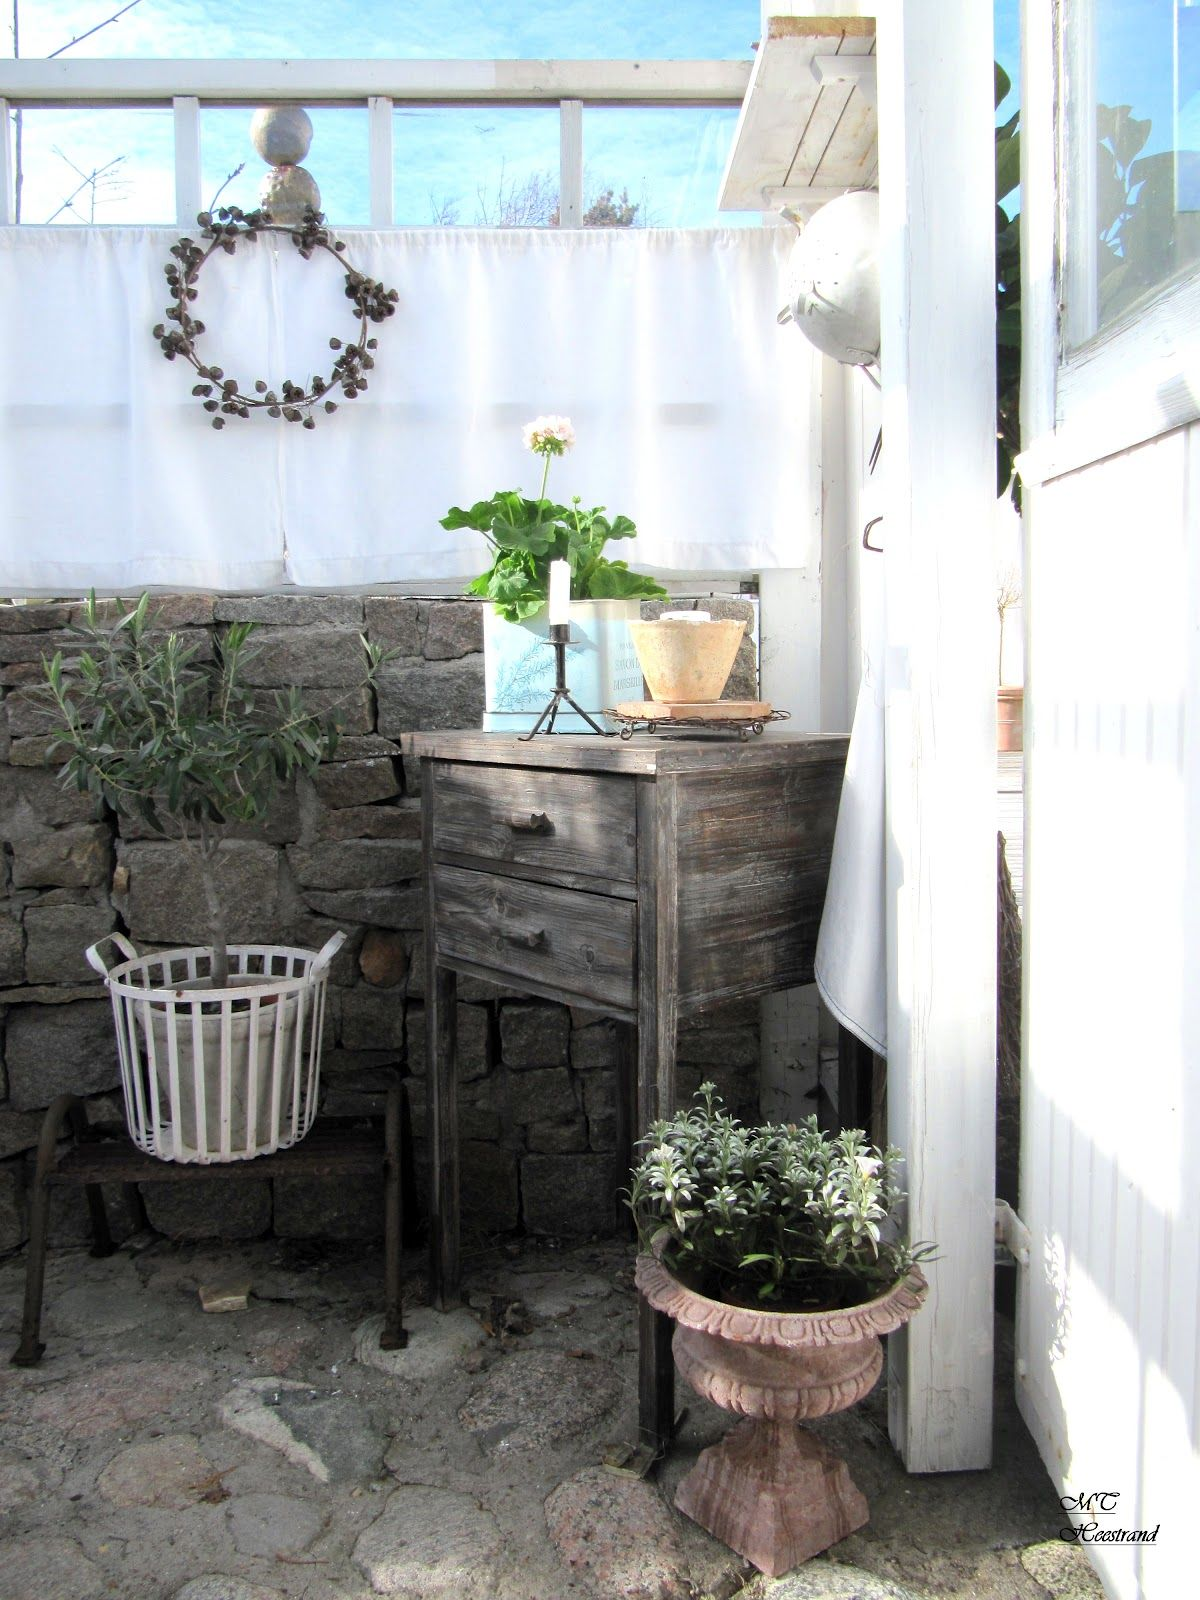 Inside gazebo outside patio garden whitewashed cottage for Patio garden accessories